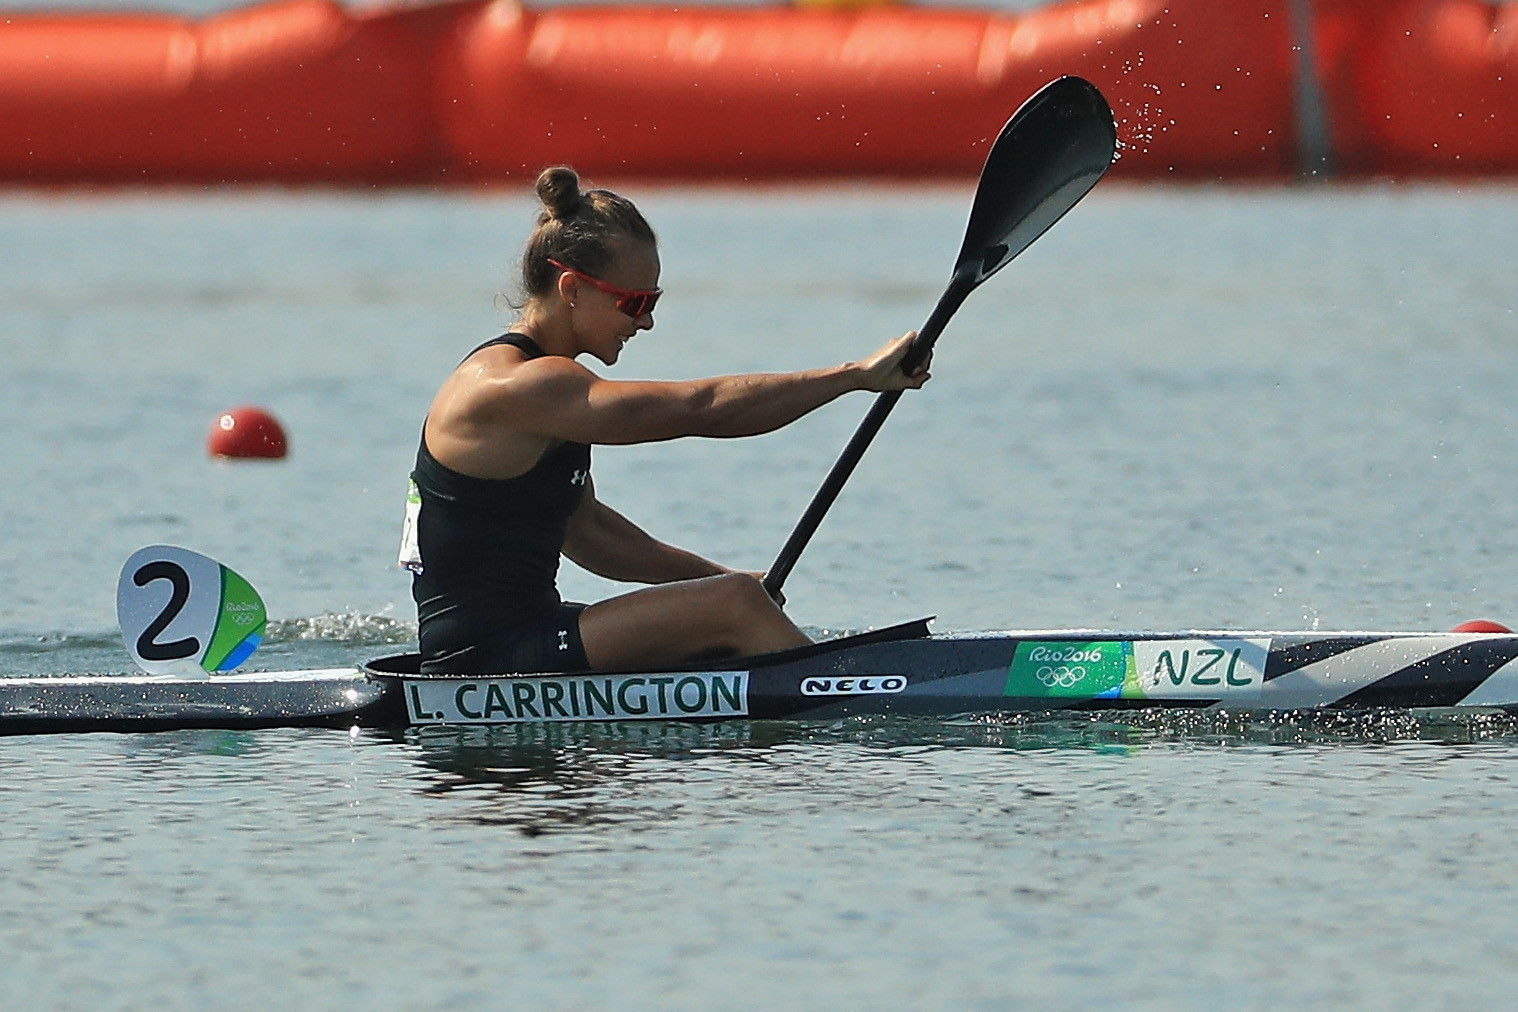 Carrington not ruling out competing in four kayak events at Tokyo 2020